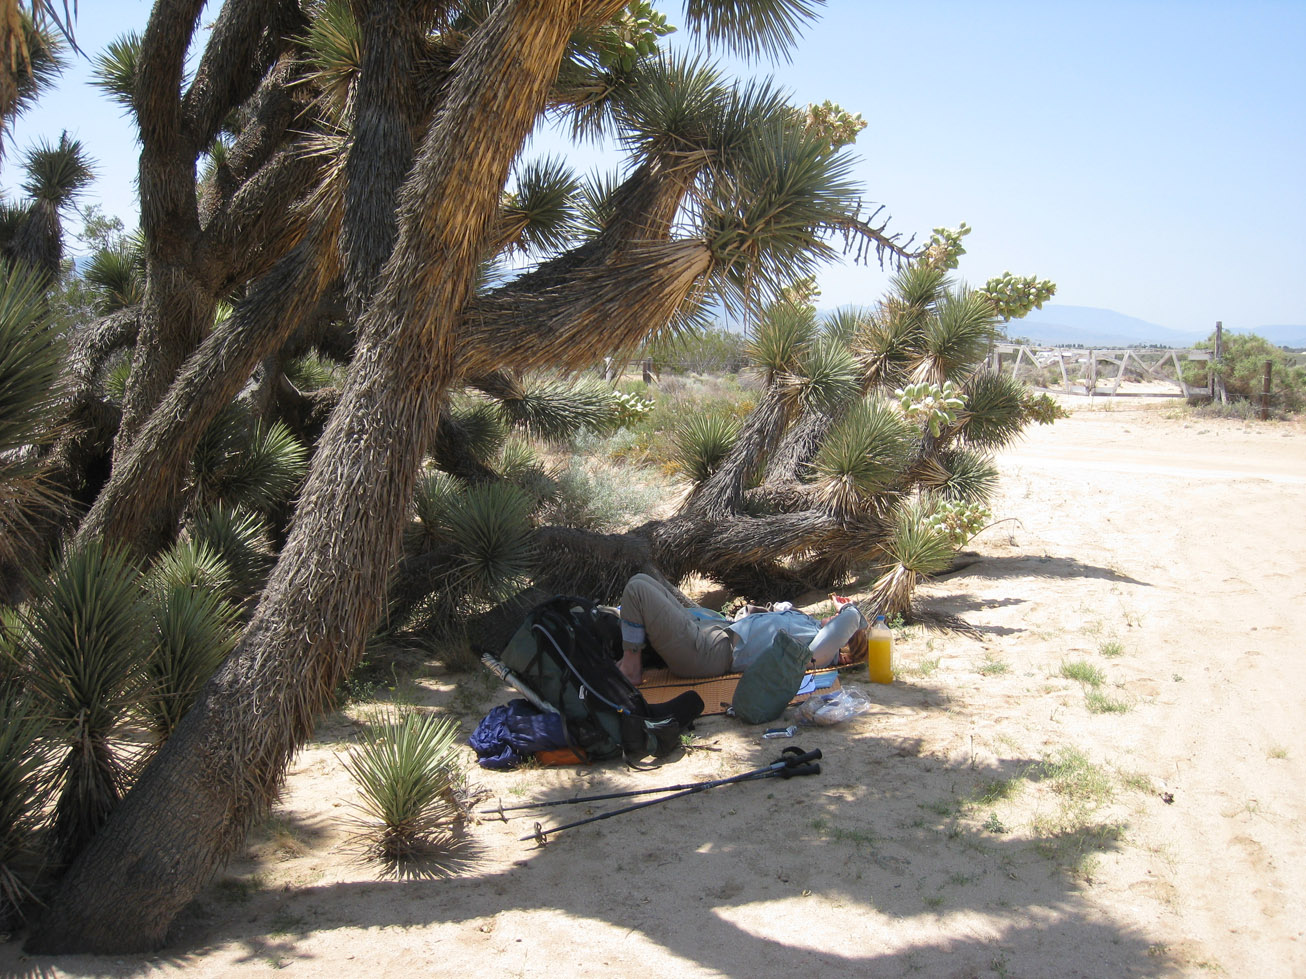 Pacific Crest Trail Desert Break backpack45 author